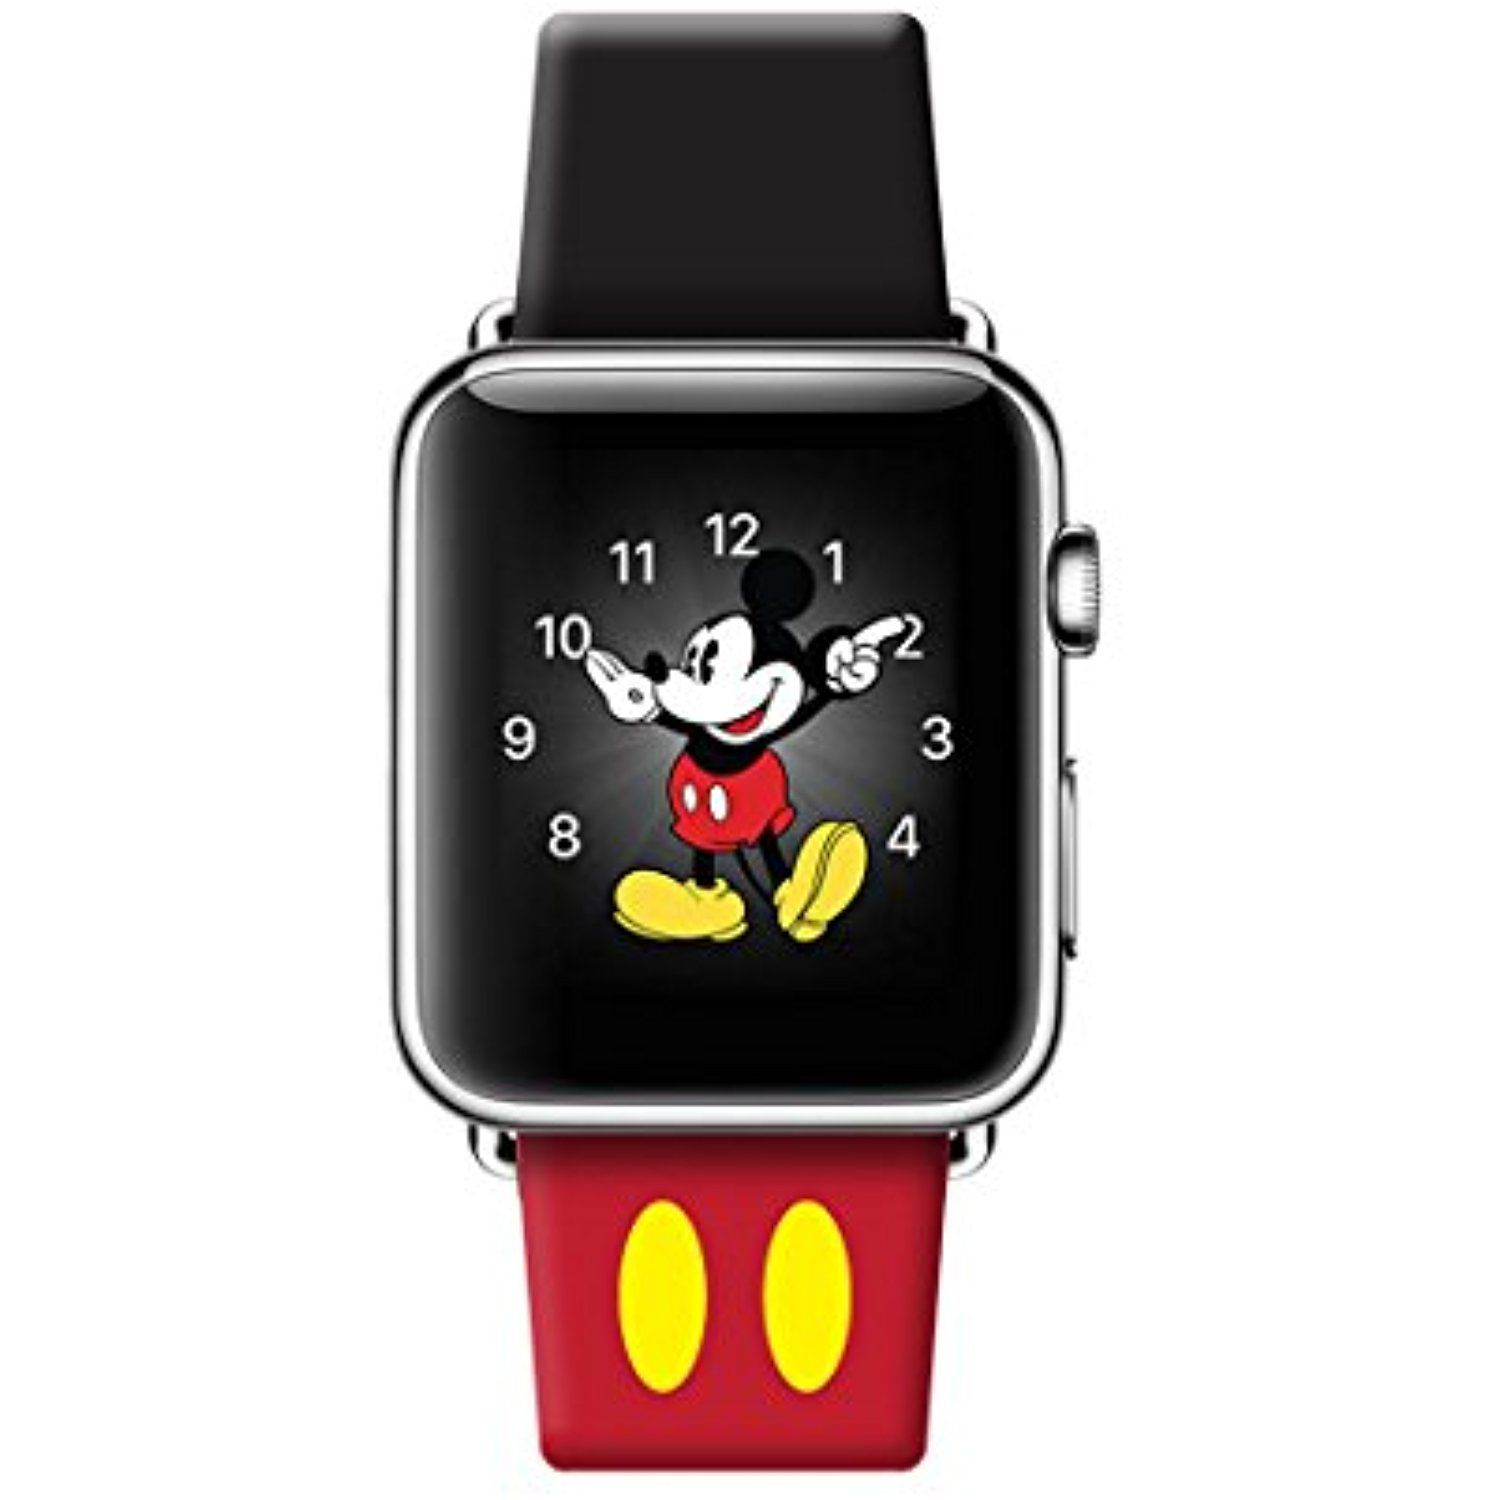 05de7abfc Apple Watch Band 38mm Leather iwatch Disney mickey mouse ears strap for Apple  Watch Series 3 Series 2 Series 1 Sport and Edition